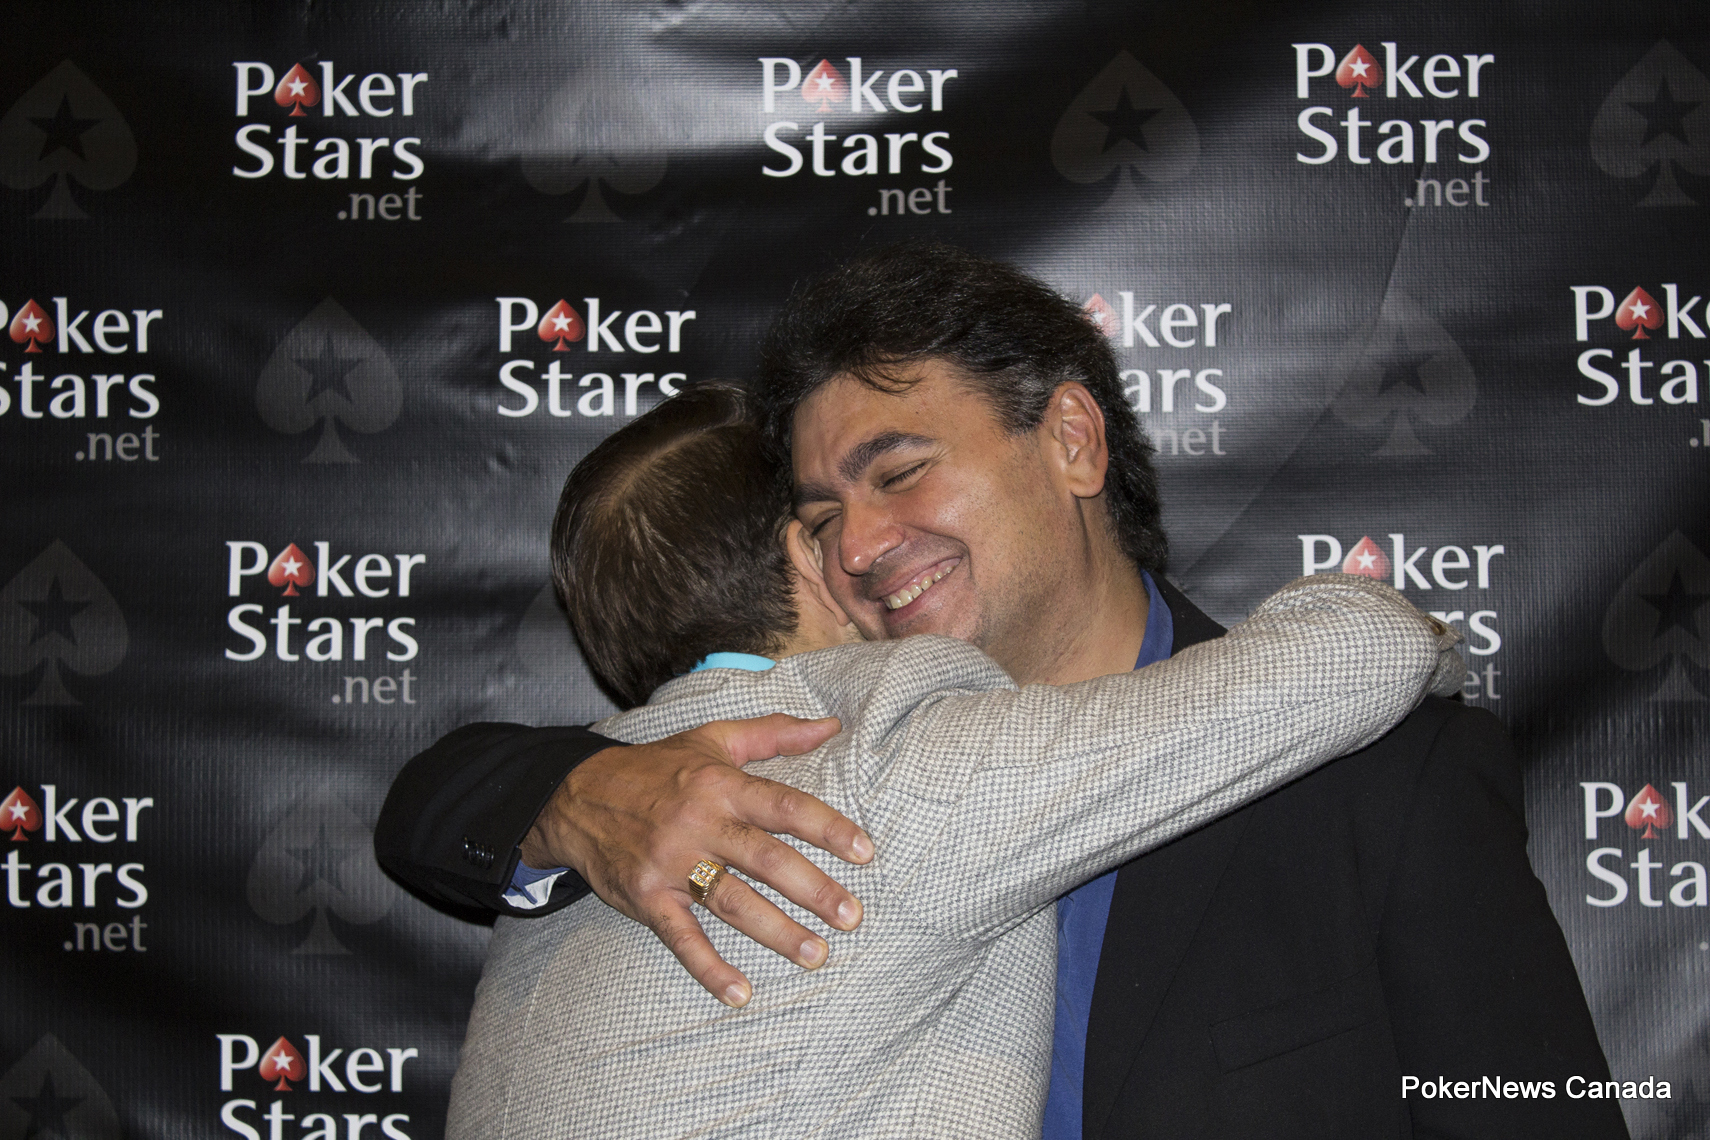 PokerStars' KidPoker Documentary Makes Public Debut Tonight on TSN 101